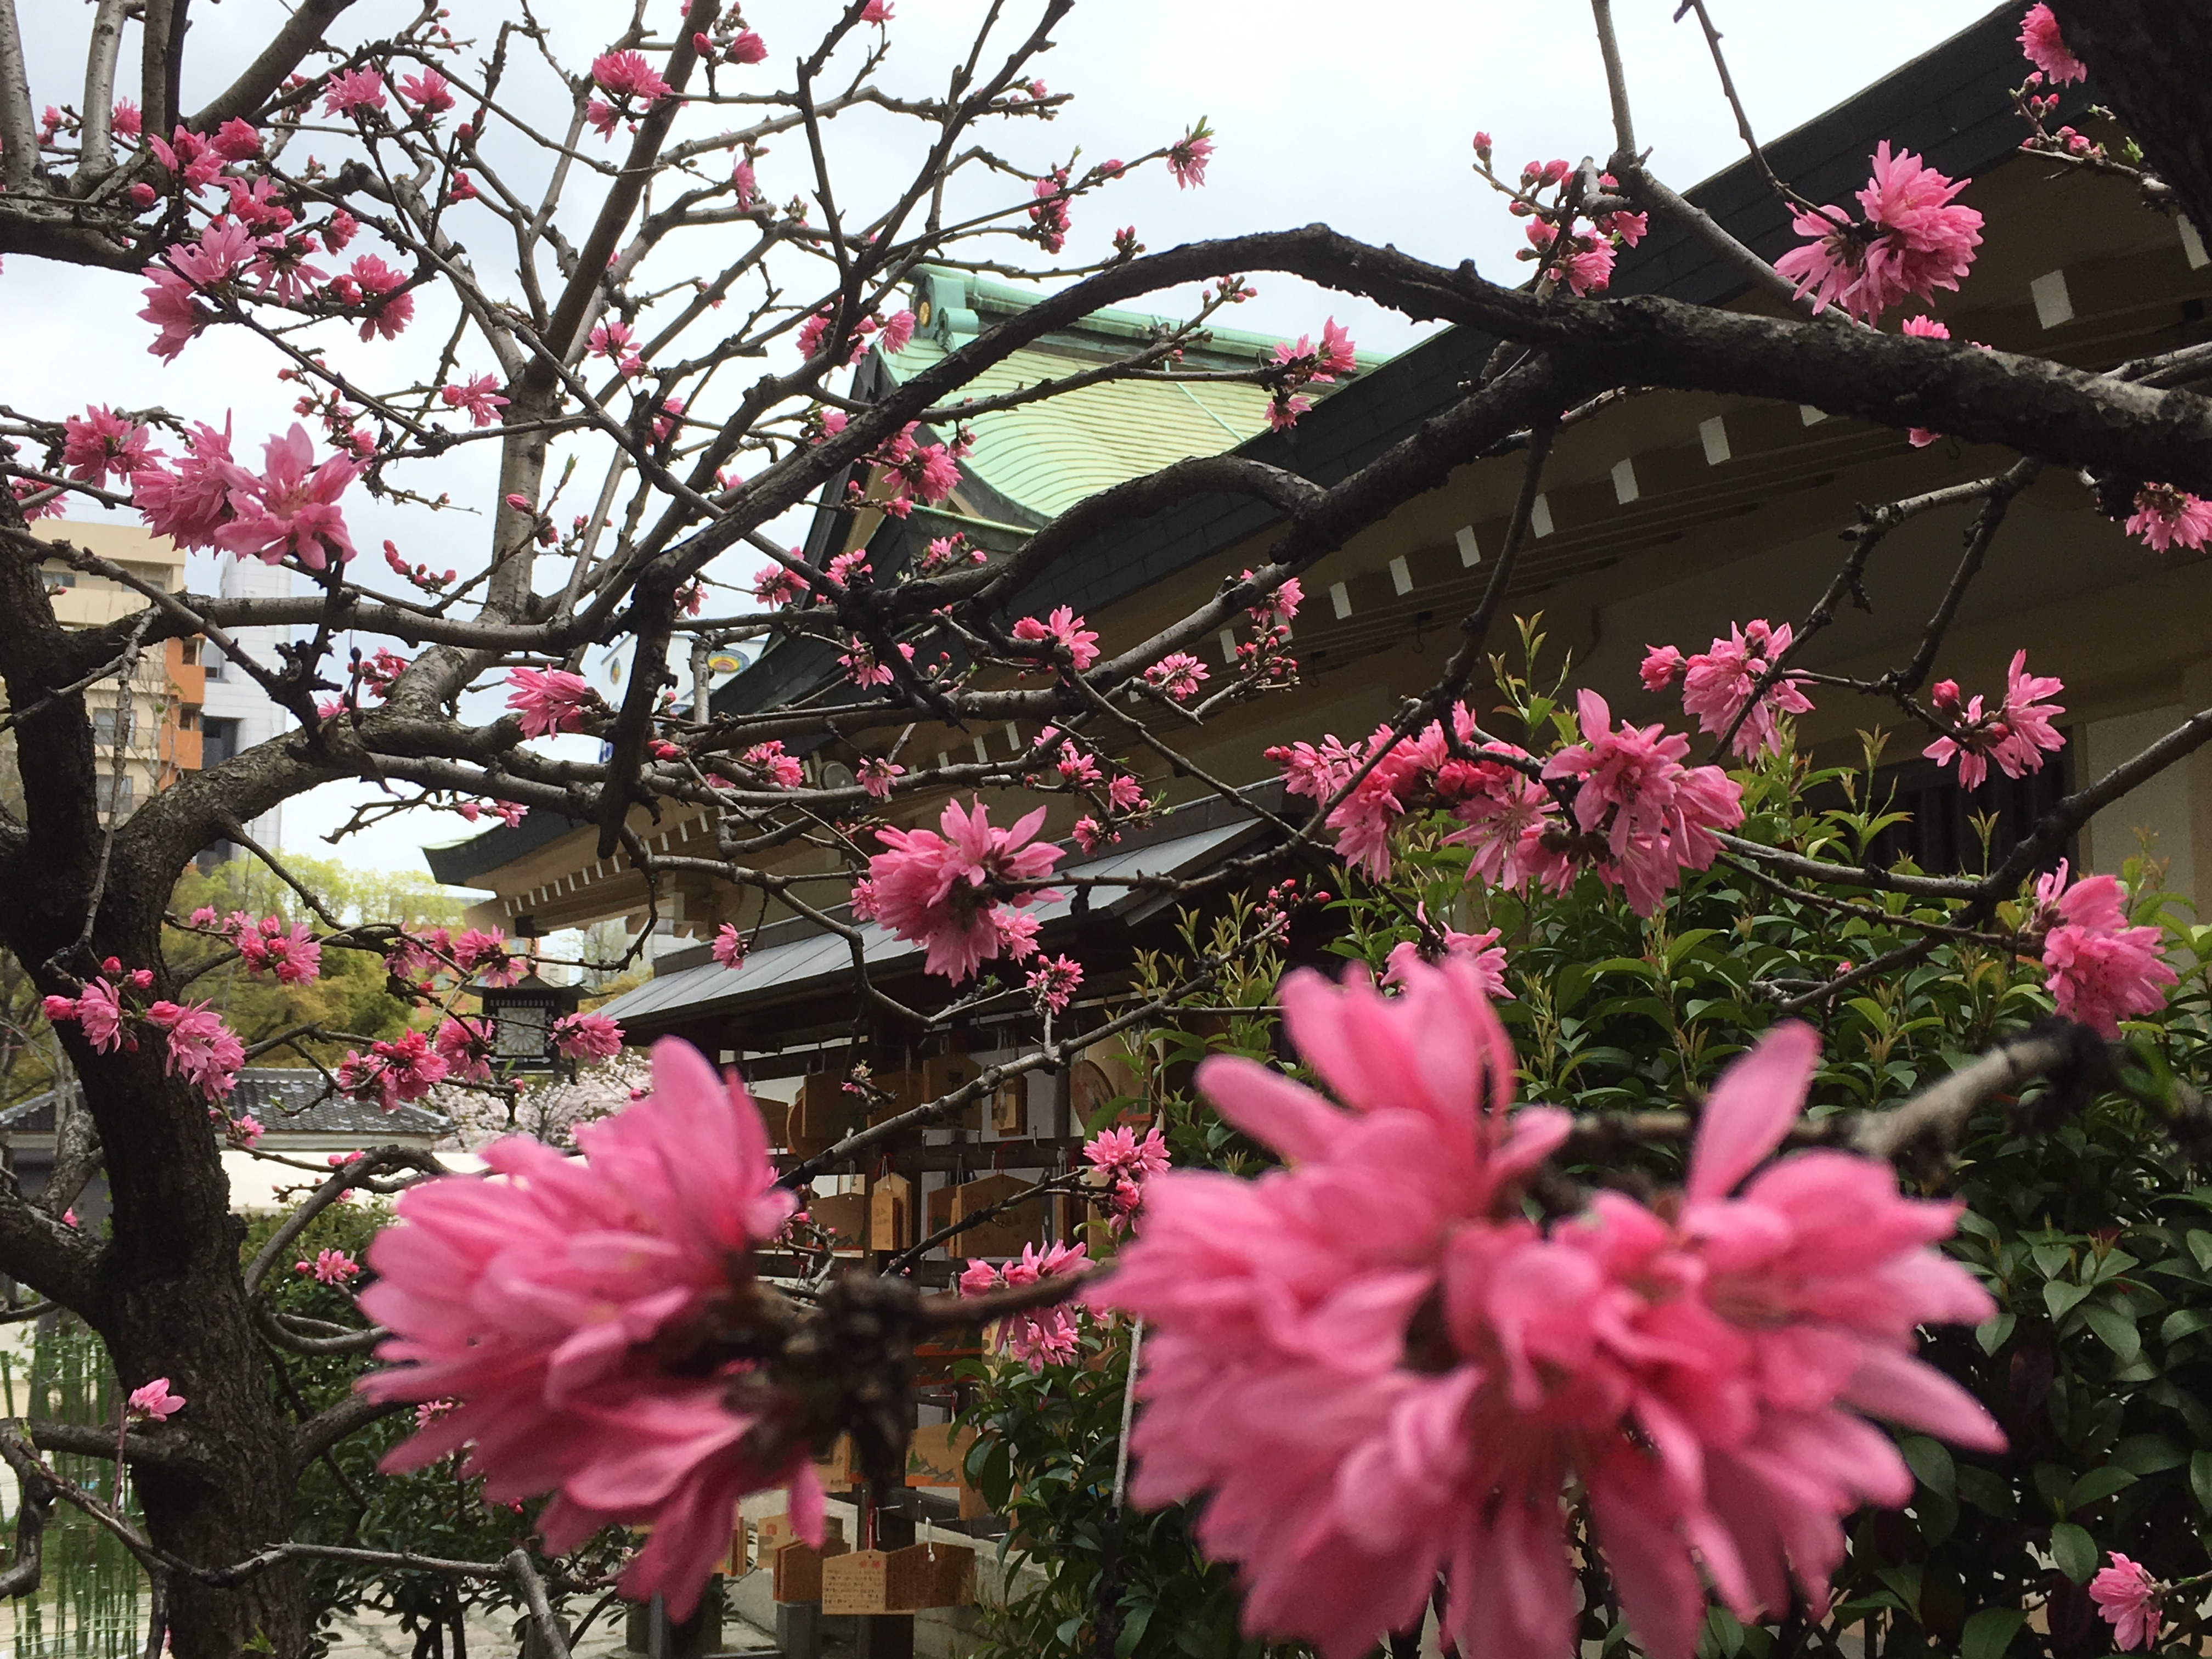 side of Ikutama shrine with pink peach blossoms